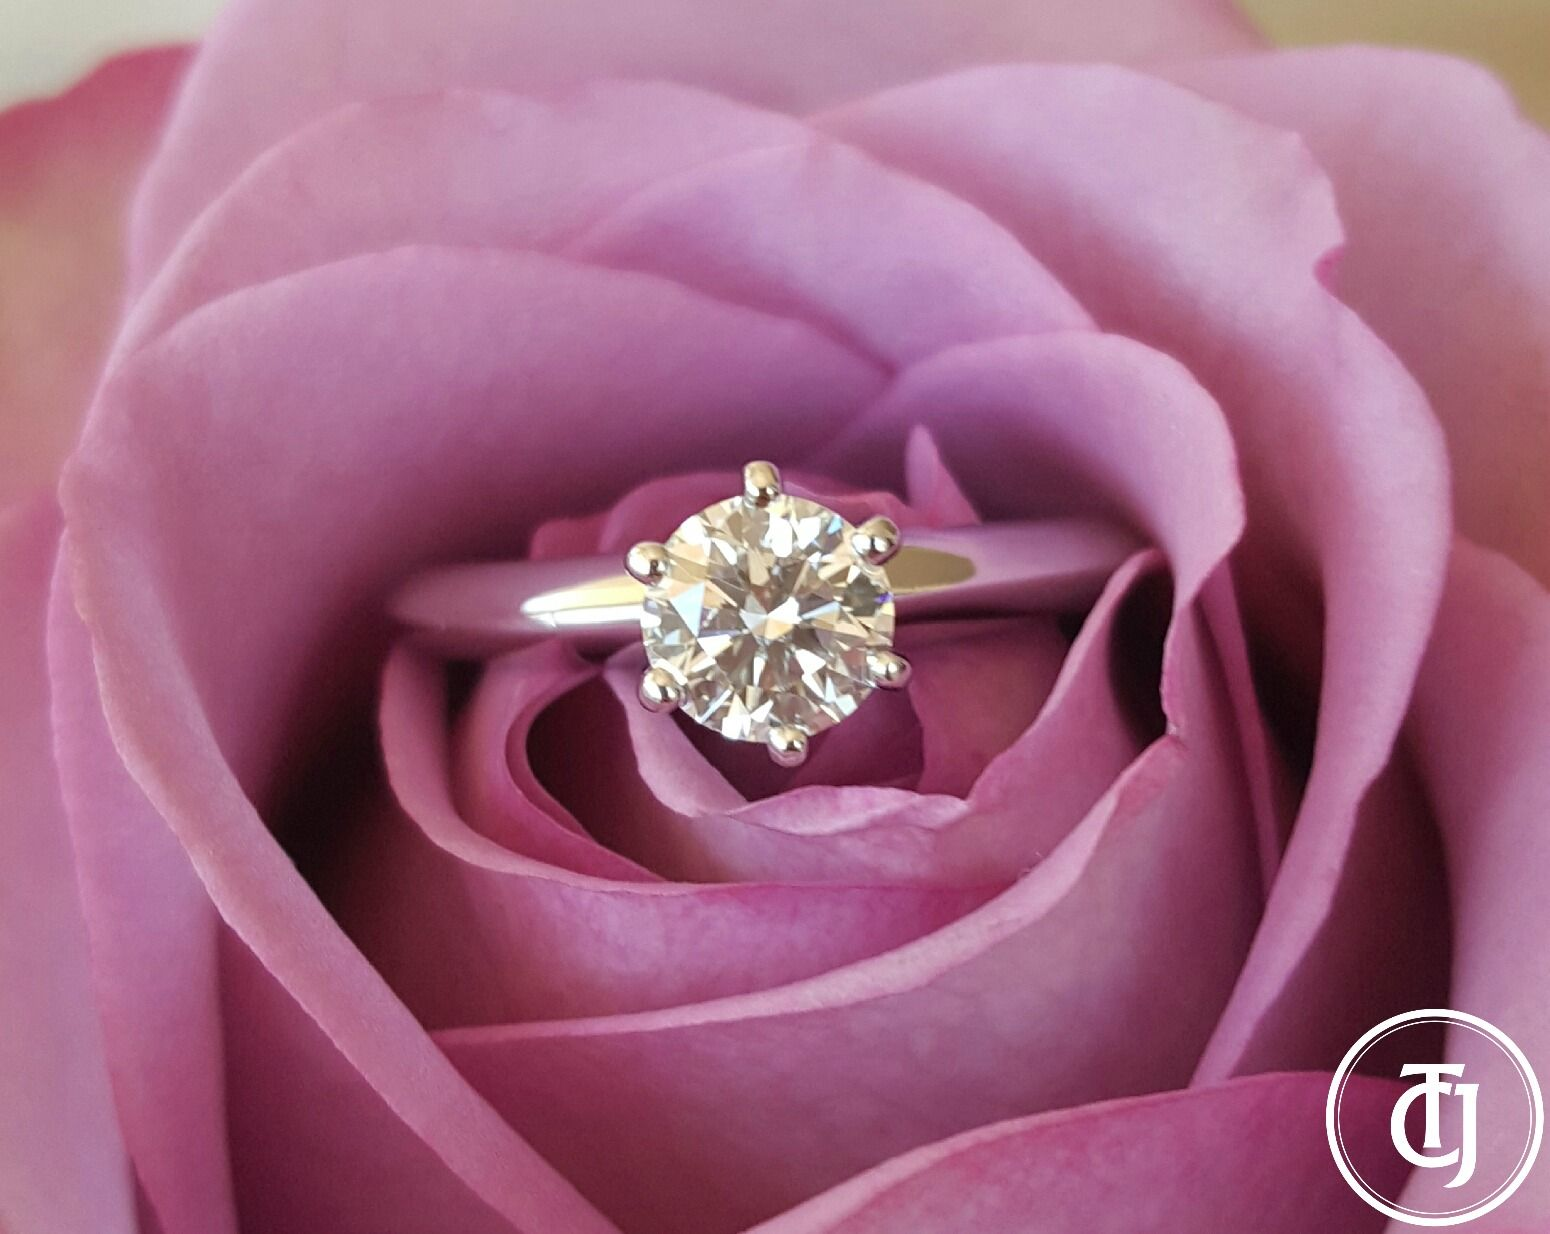 Tiffany & Co. Solitaire Diamond Engagement Ring | Beauty | Pinterest ...